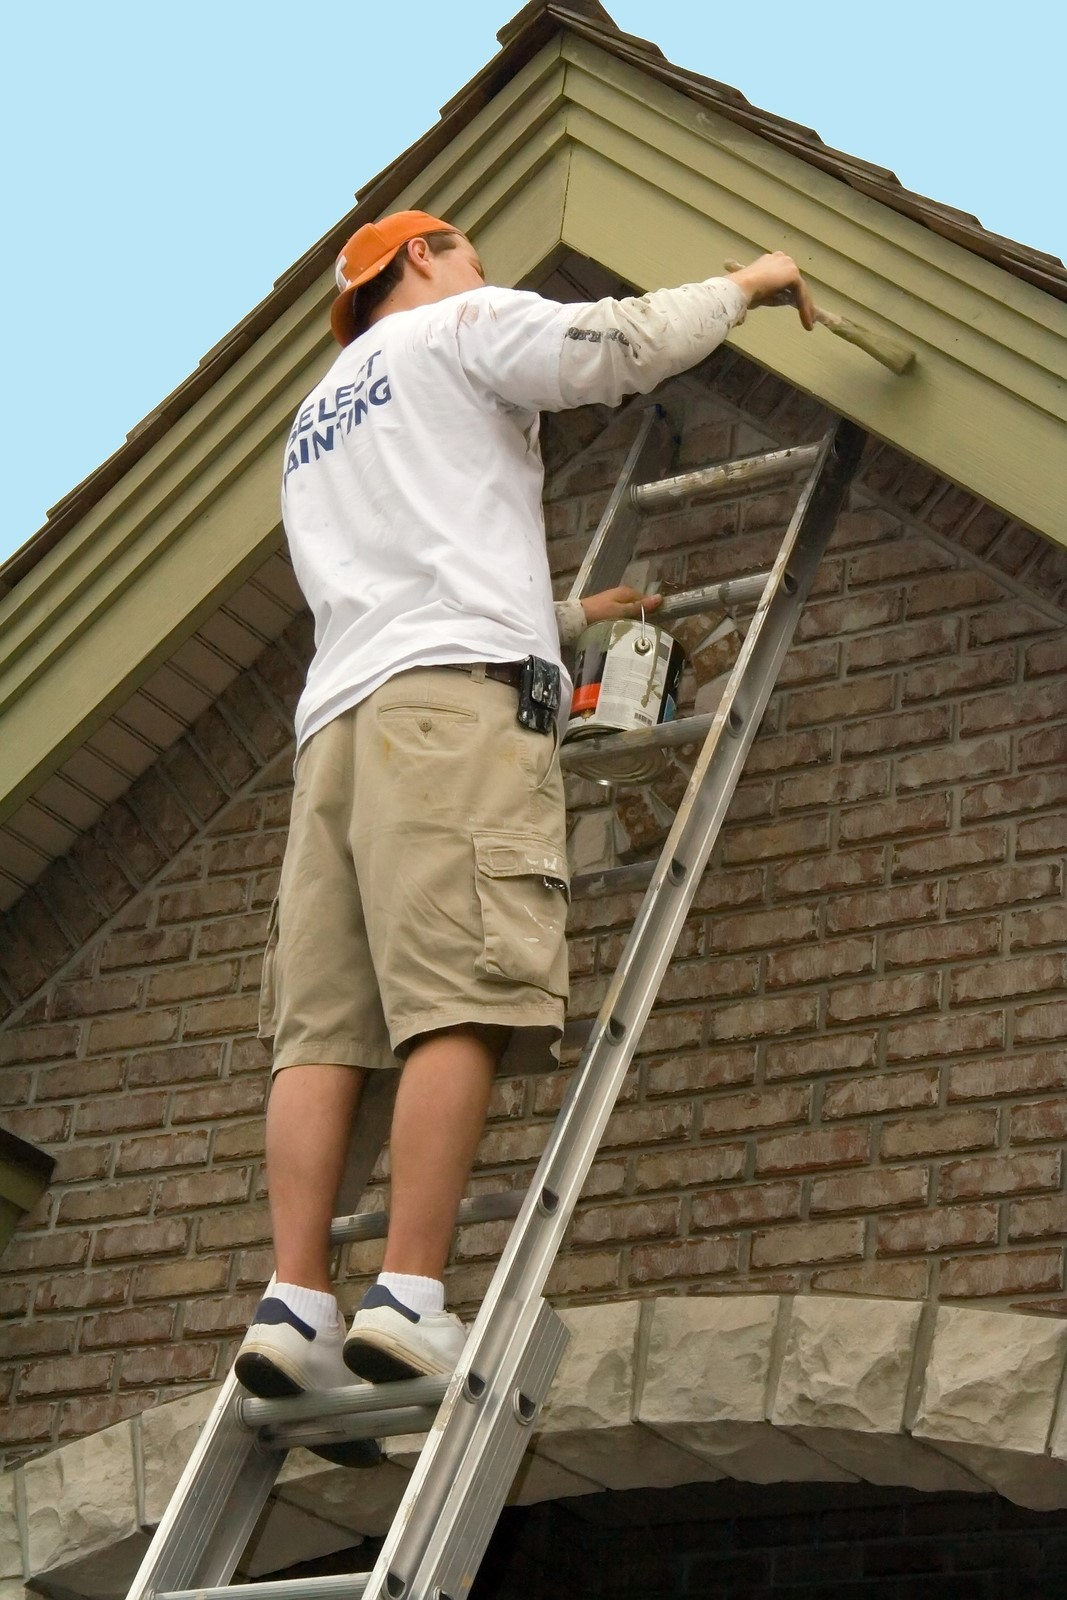 hire a handyman in coventry for help in painting the house u0027s exterior